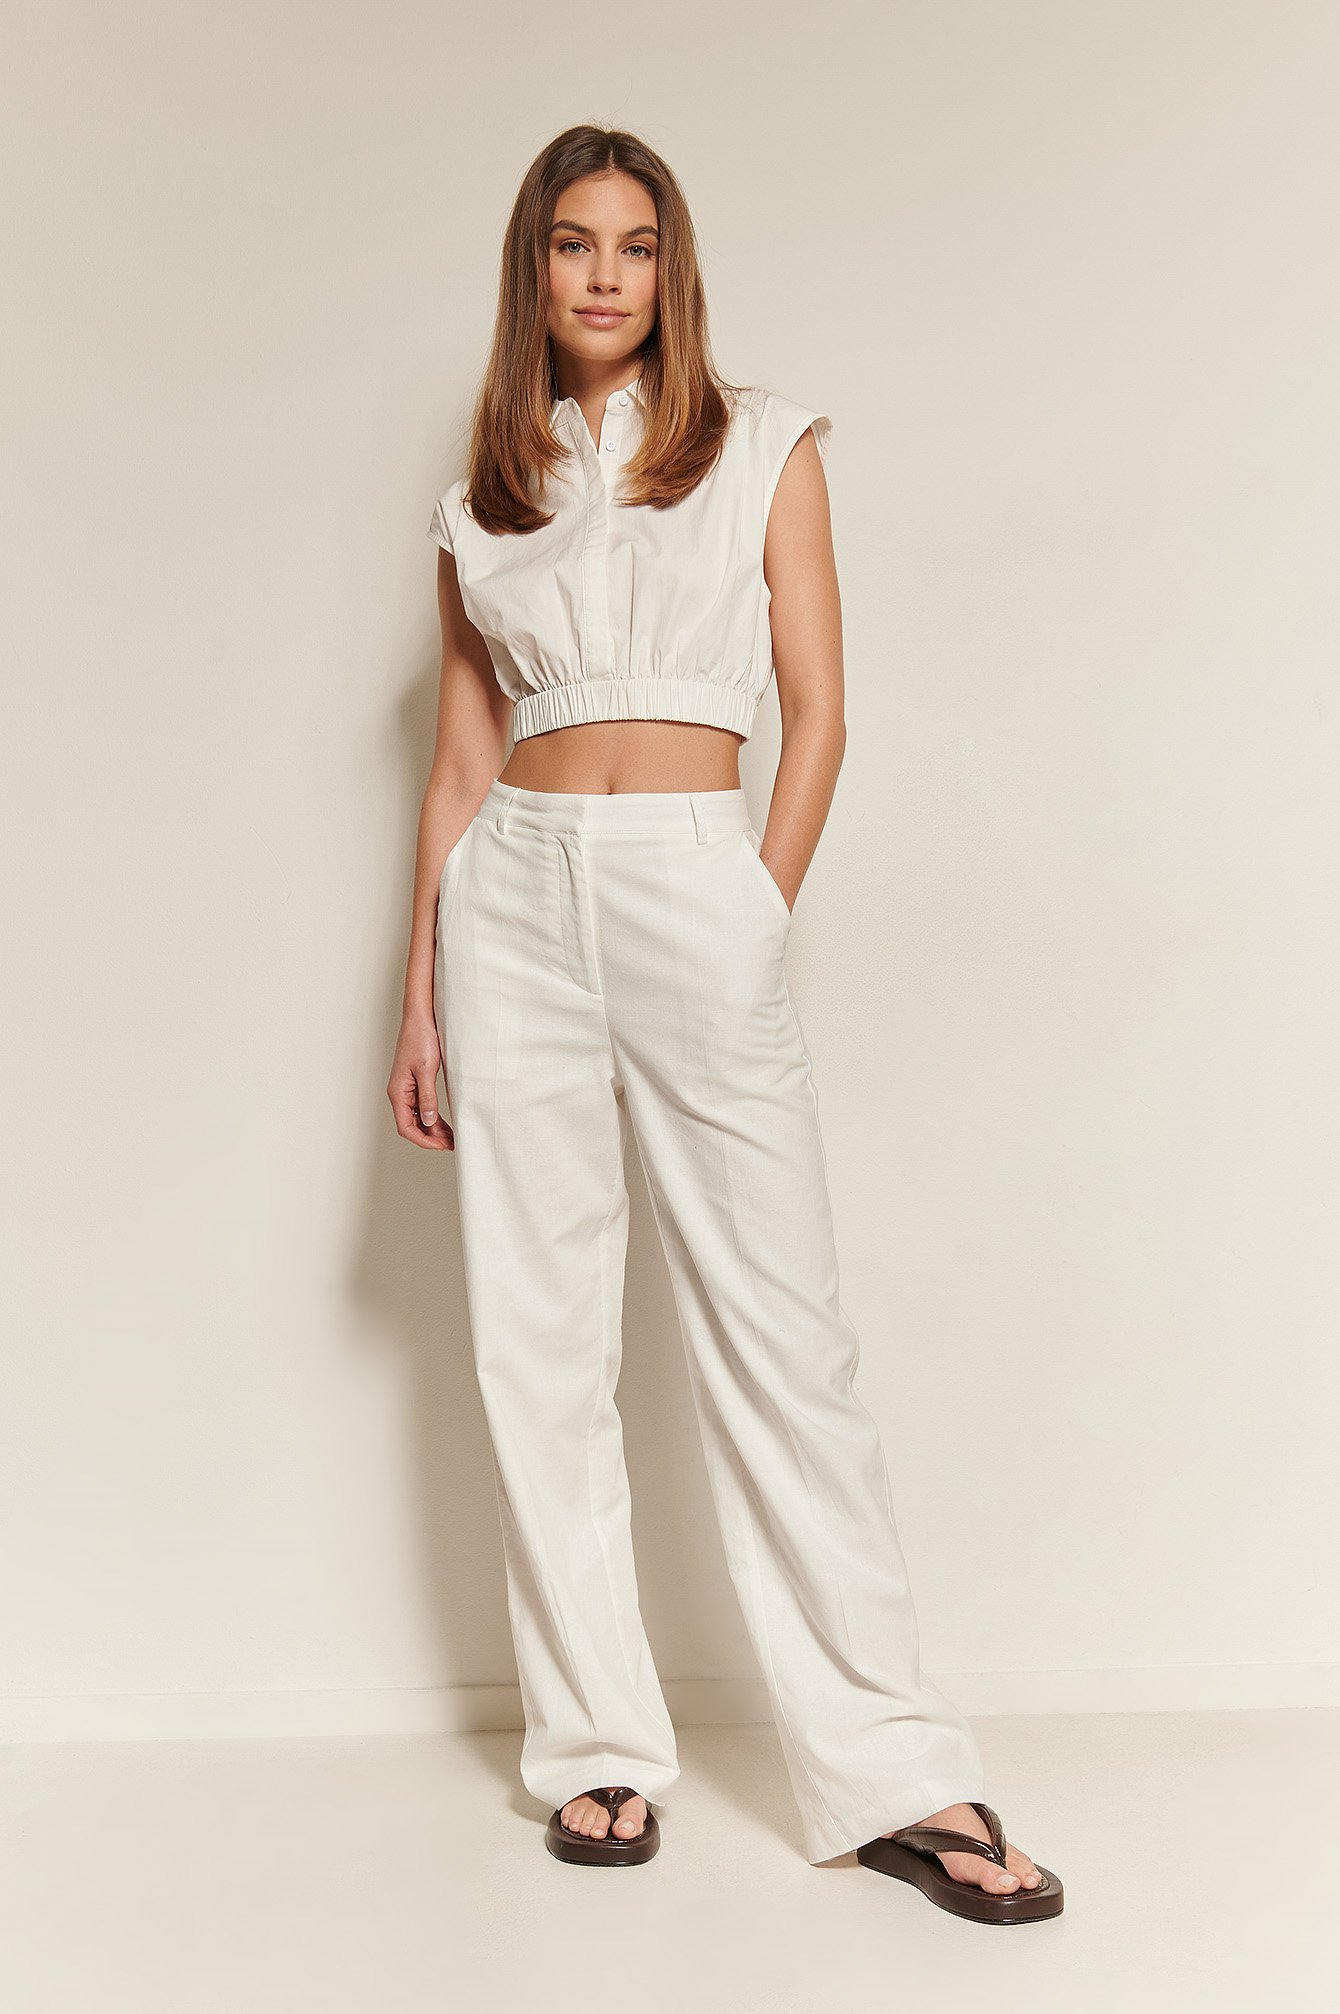 White Loose Fit Suit Pants